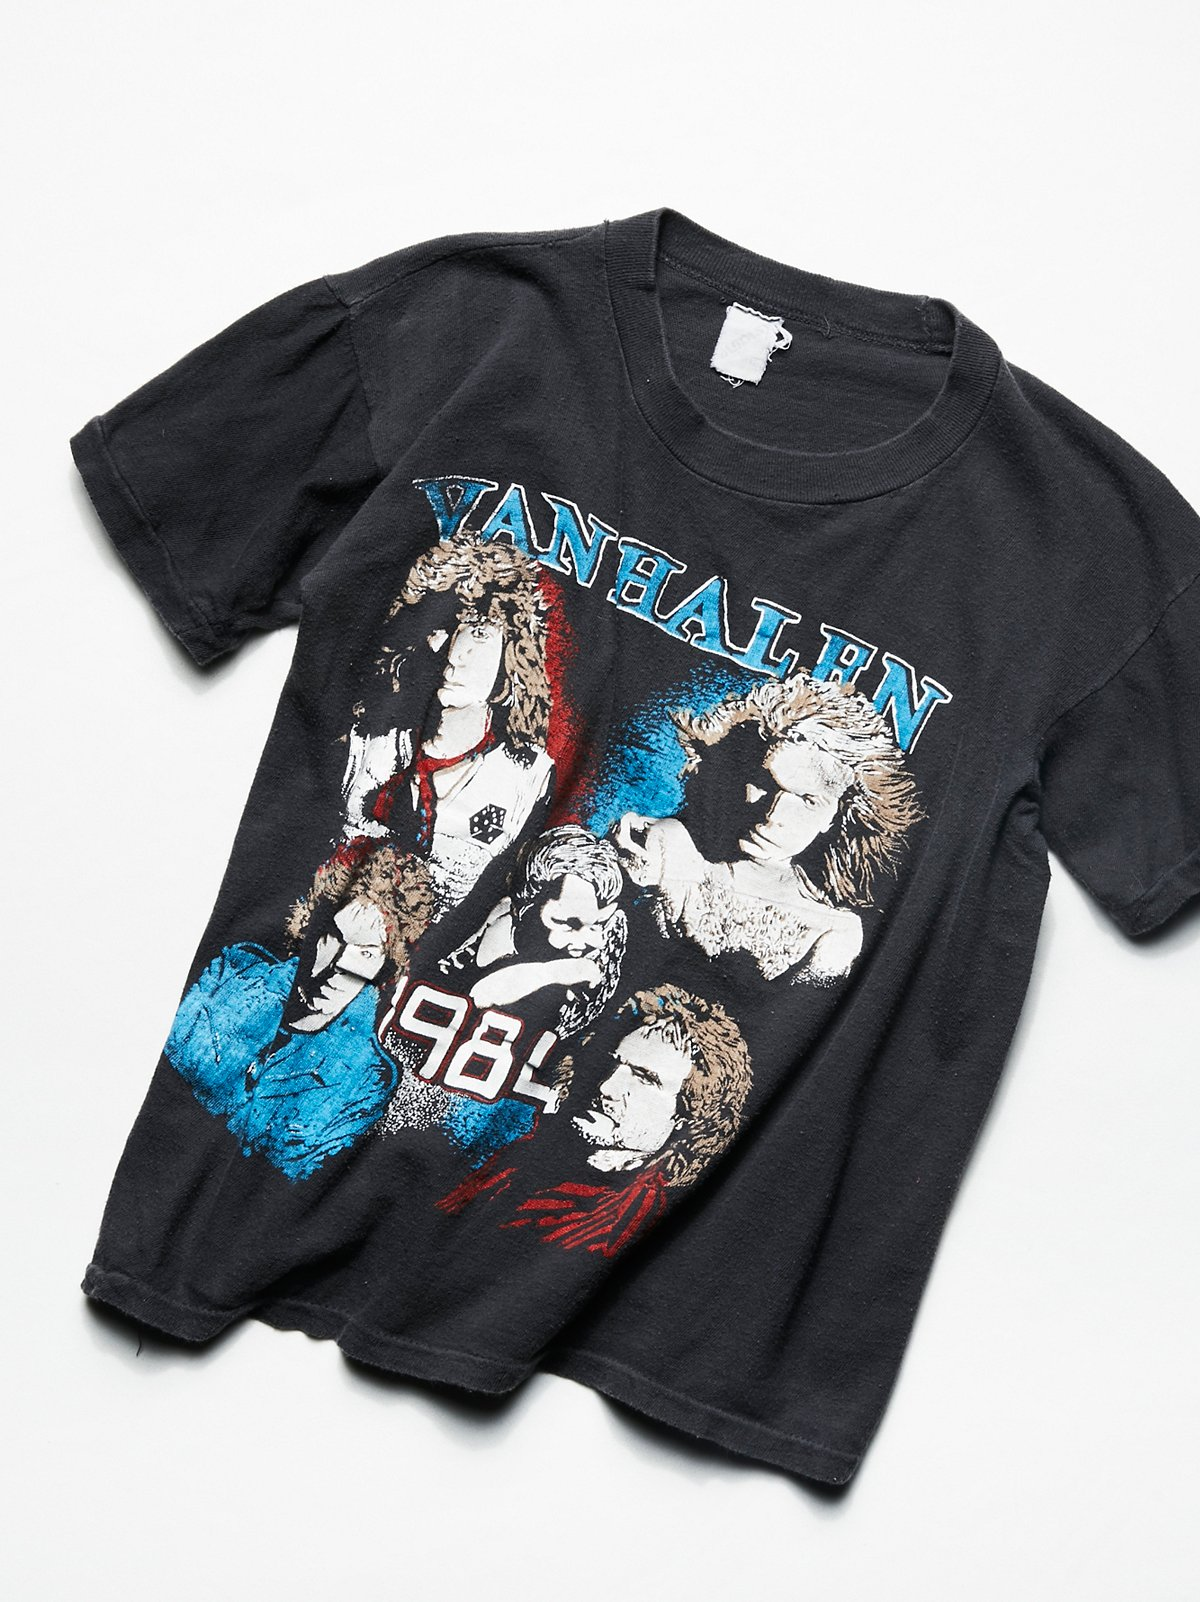 Vintage 1980s Band Tee